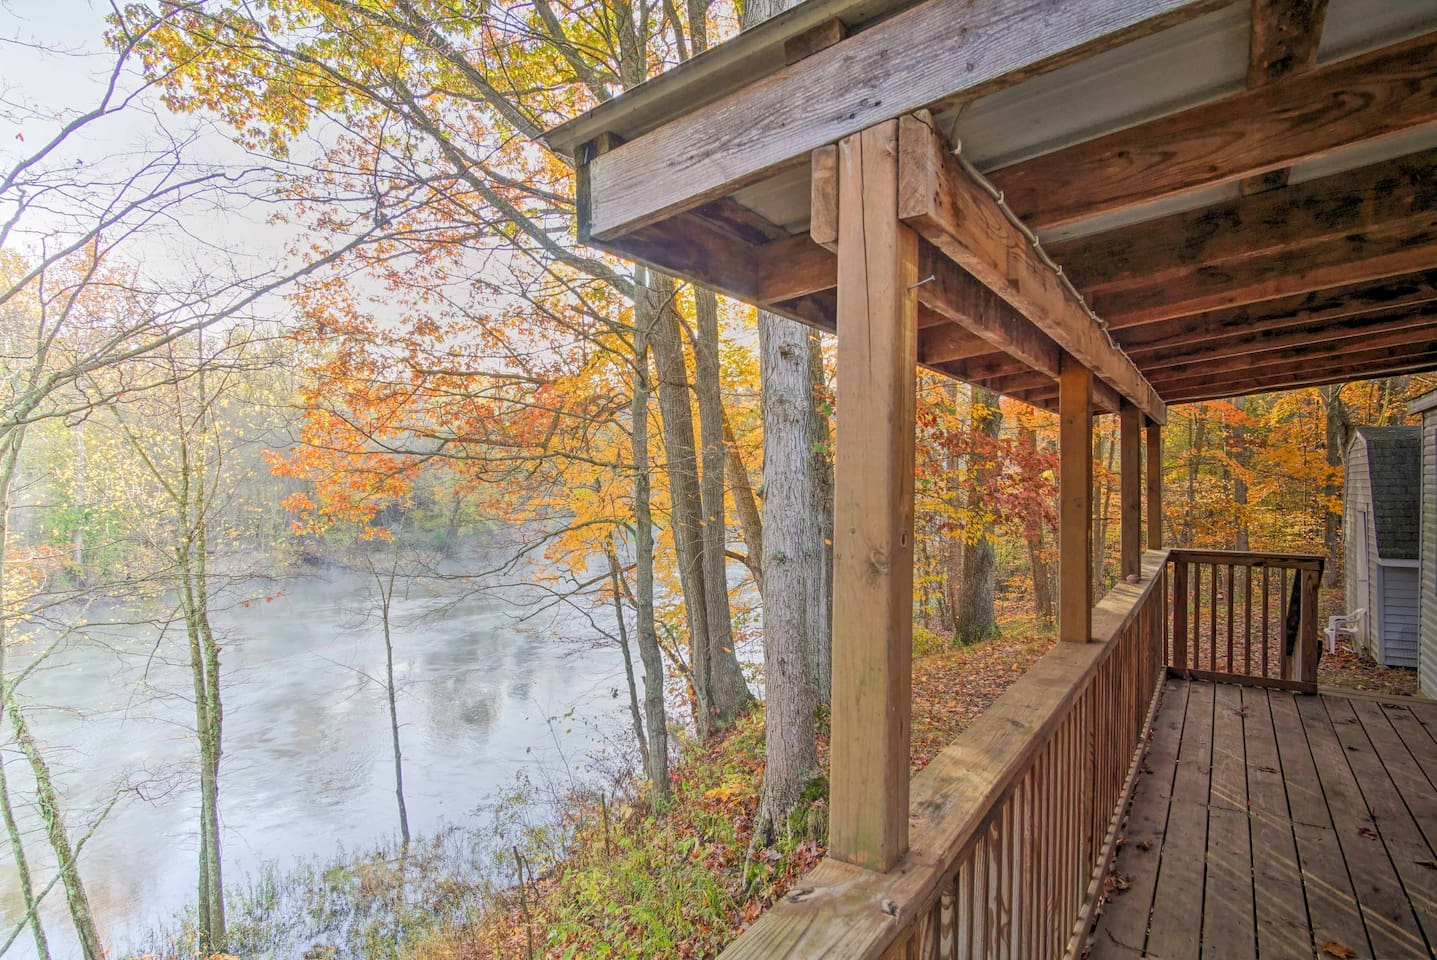 Wake up to the sounds of Muskegon River rushing by in Fremont, Michigan!